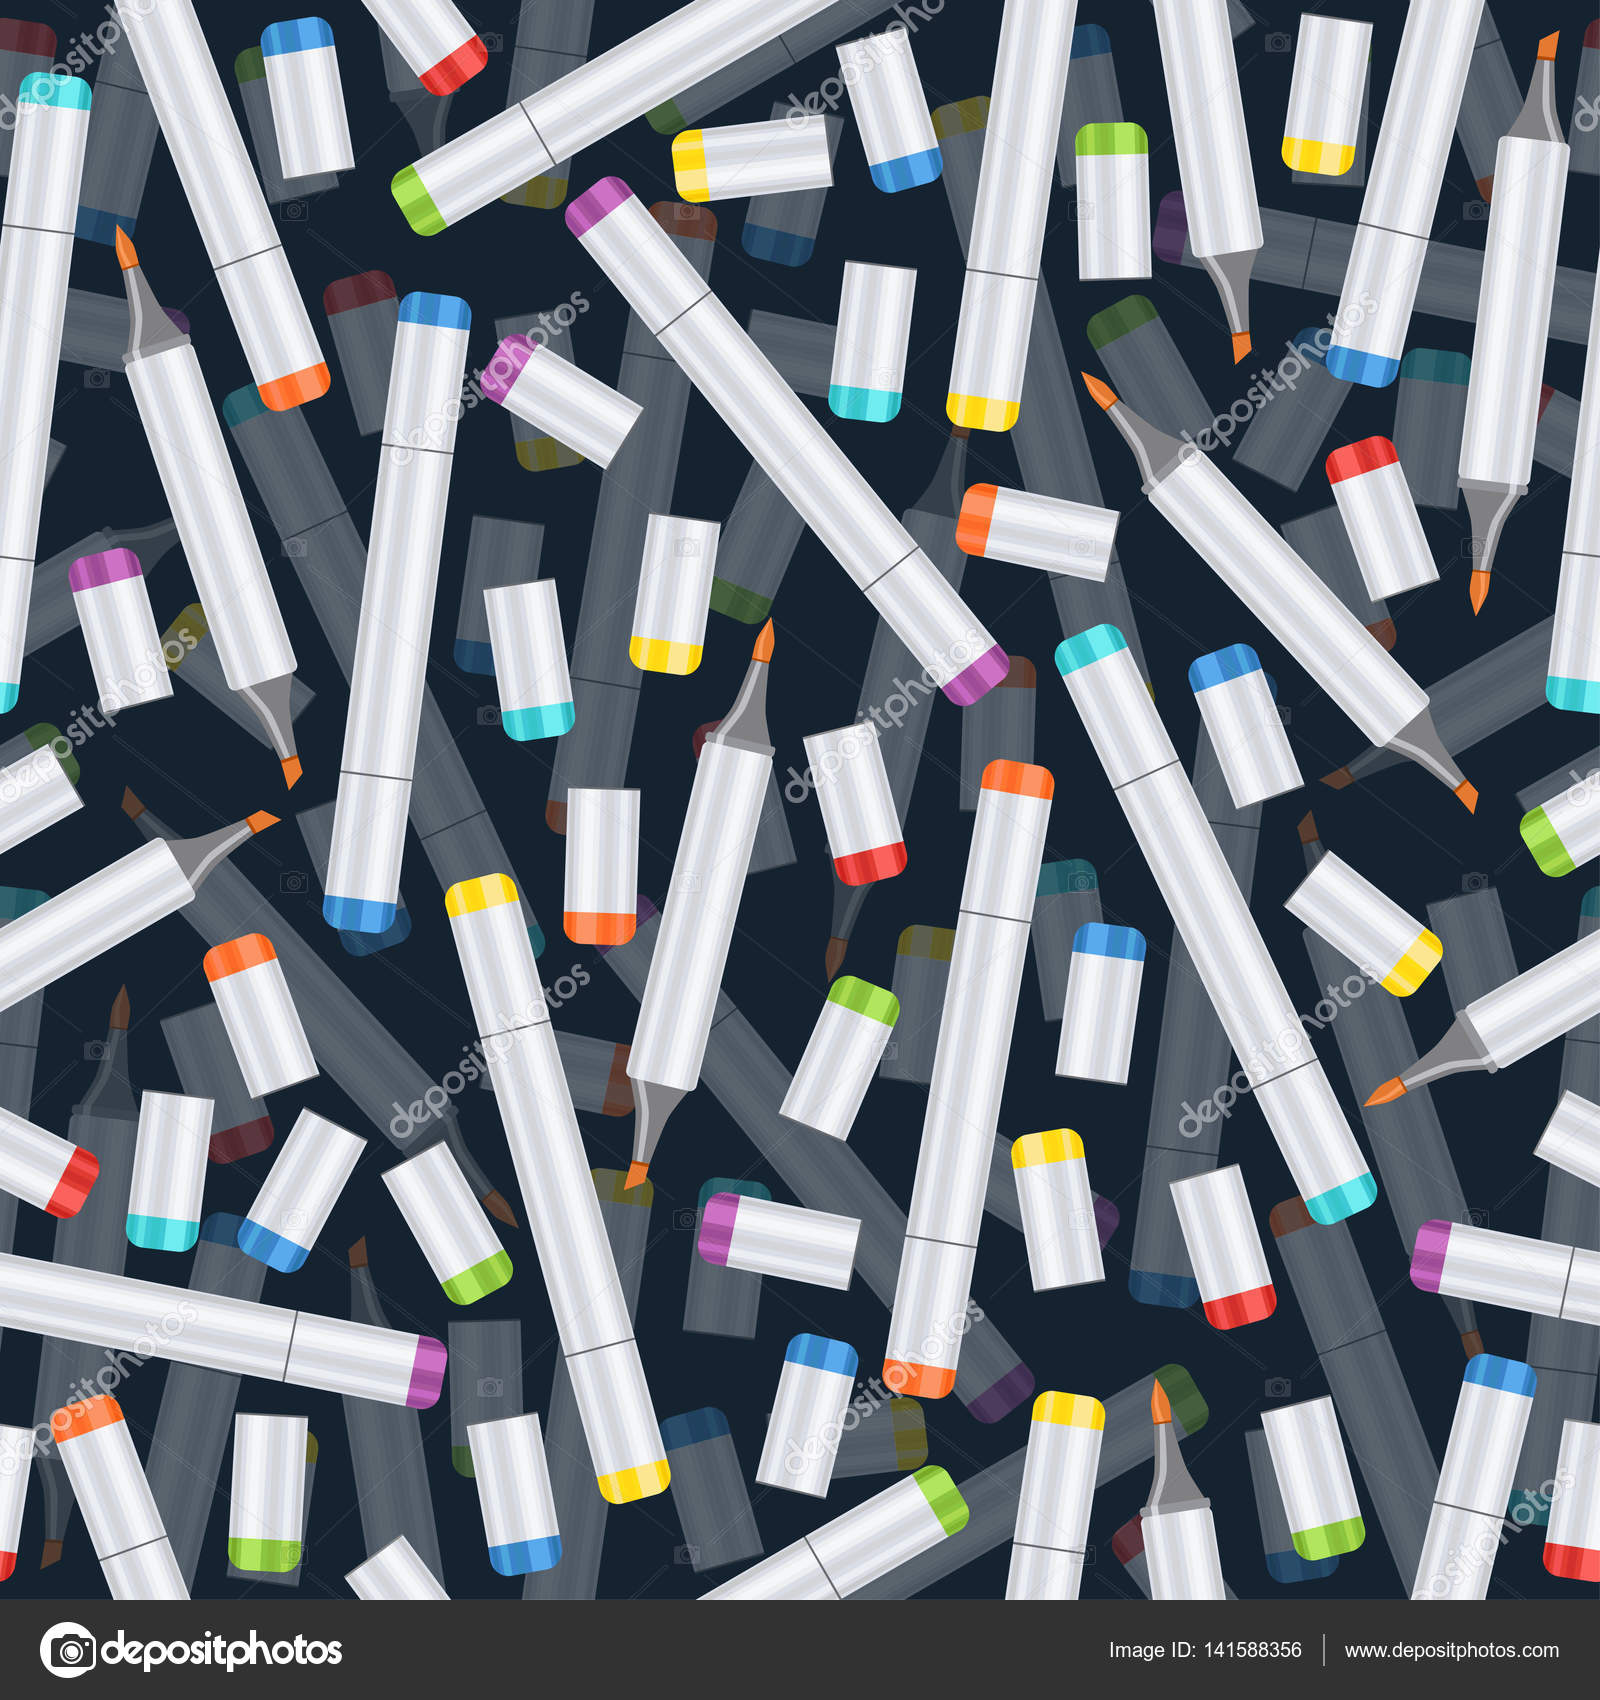 Markers Seamless Pattern Art Background Realistic Multicolored Professional Marker On Dark Blue Backdrop Vector Supplies Materials For Wallpaper